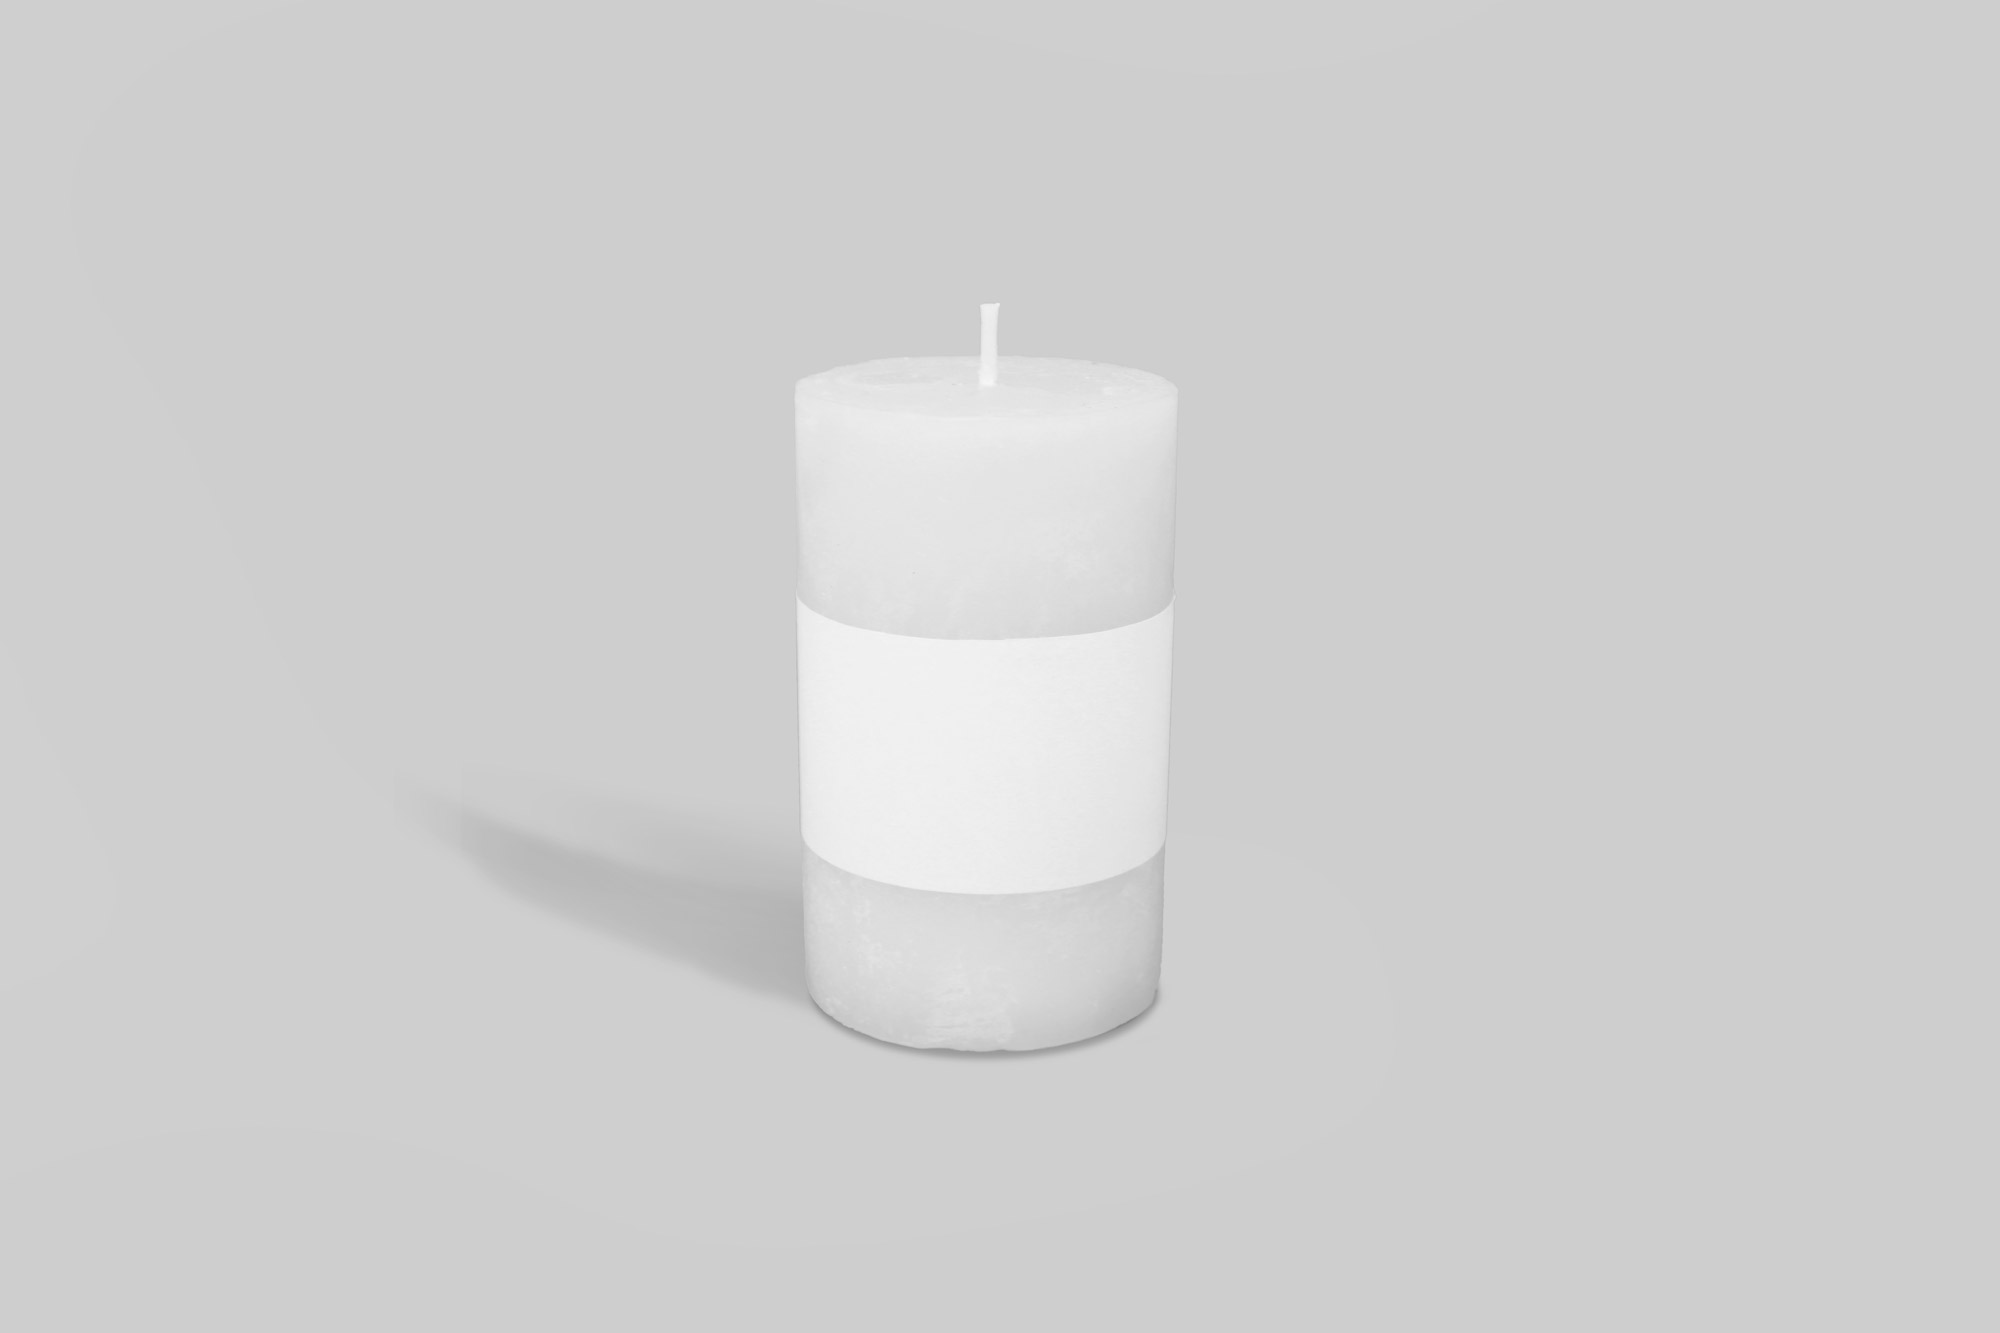 Candle Mock-up #1 example image 1